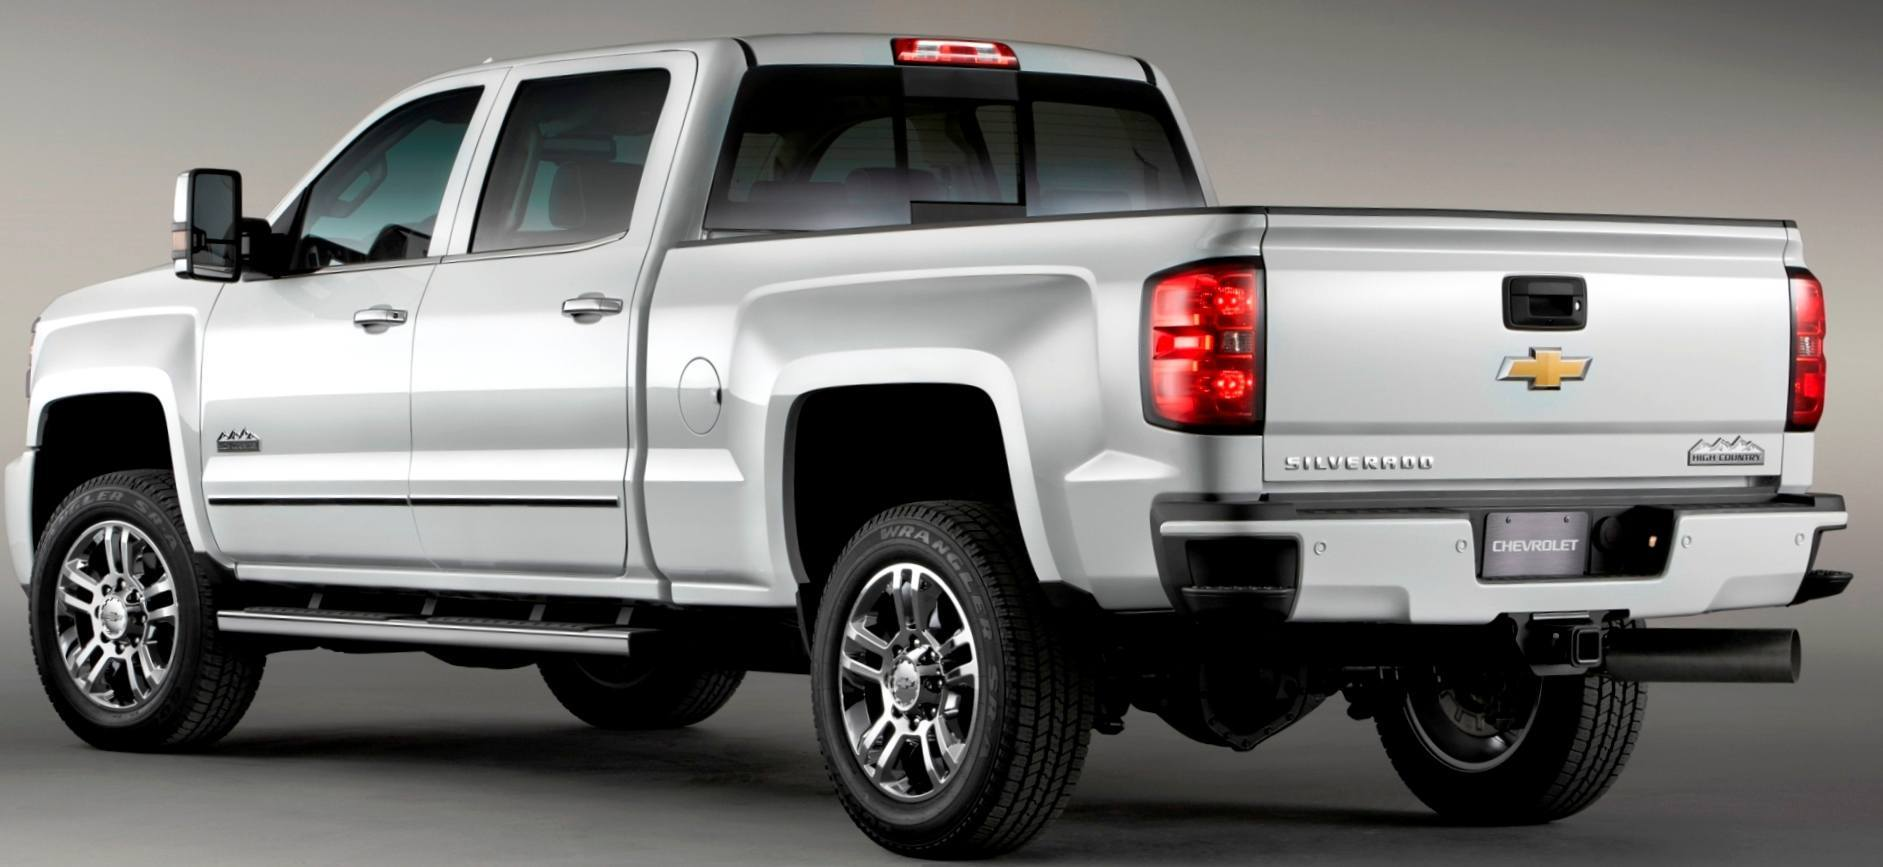 2017 Chevrolet Silverado 2500hd And 3500hd Arriving Now To Dealers Nationwide High Country Edition Tops The Range In Style